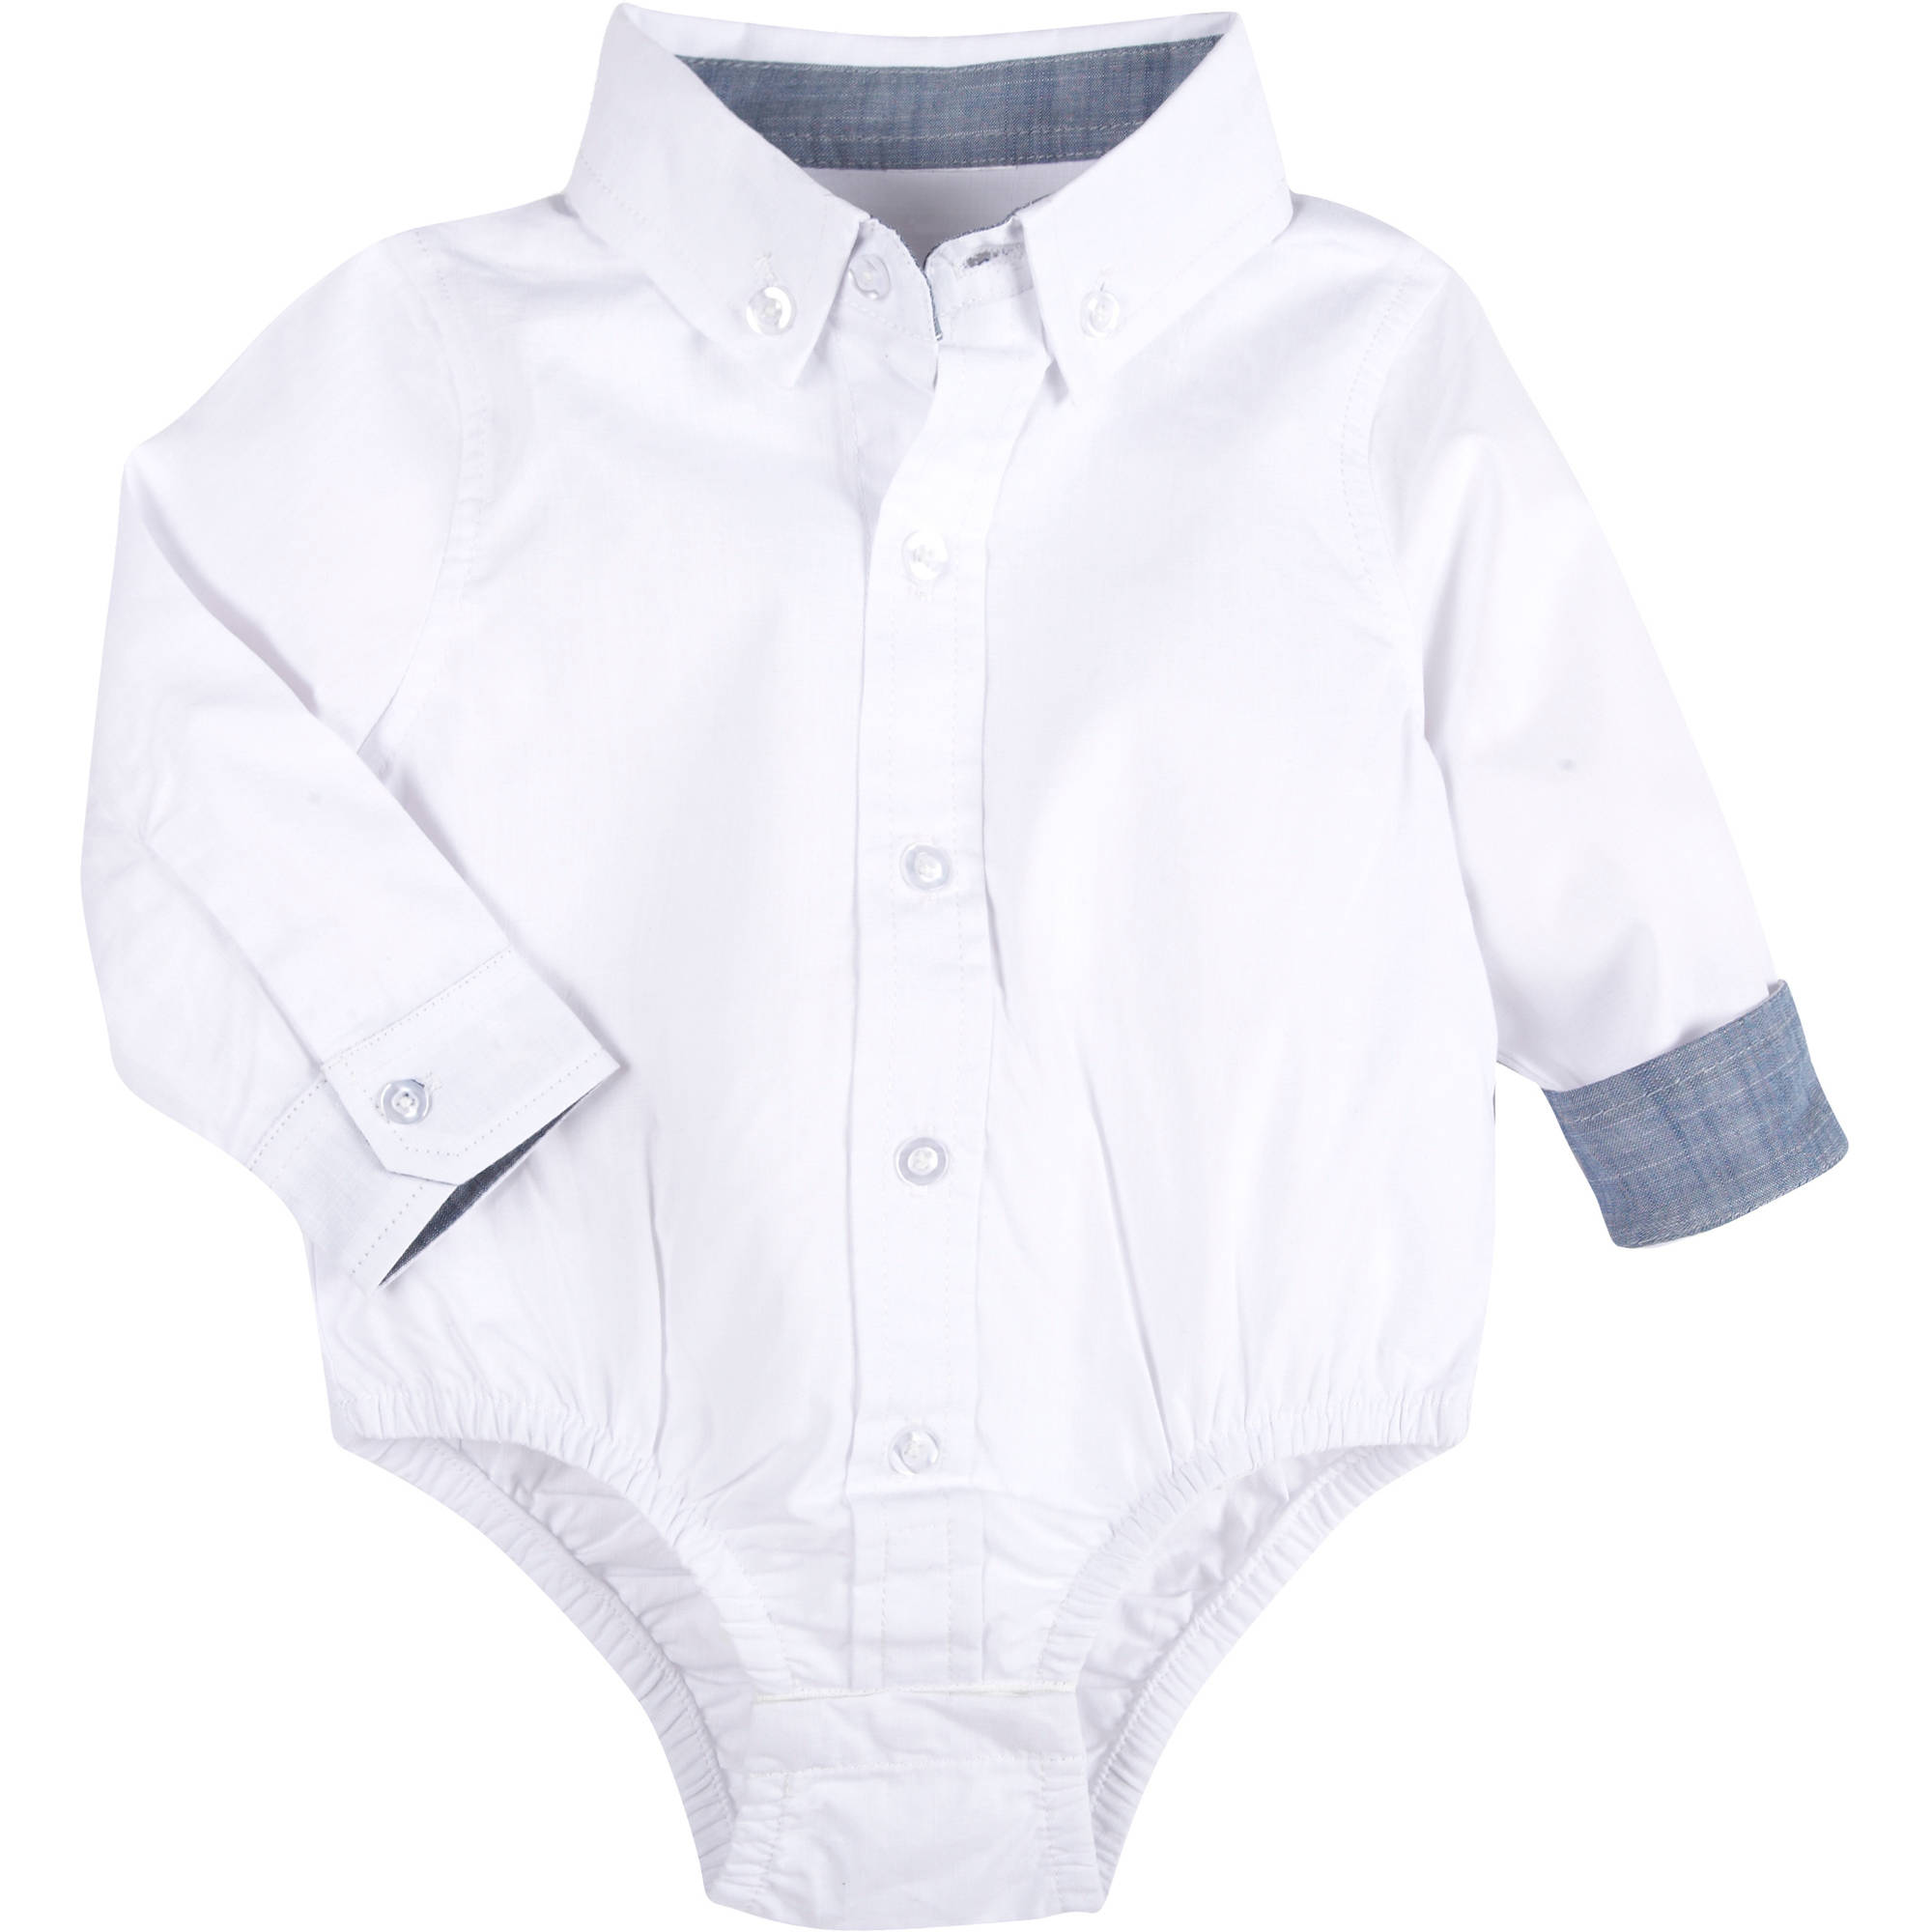 Newborn Baby Boys Chambray Shirt Bodysuit With Seersucker Bowtie